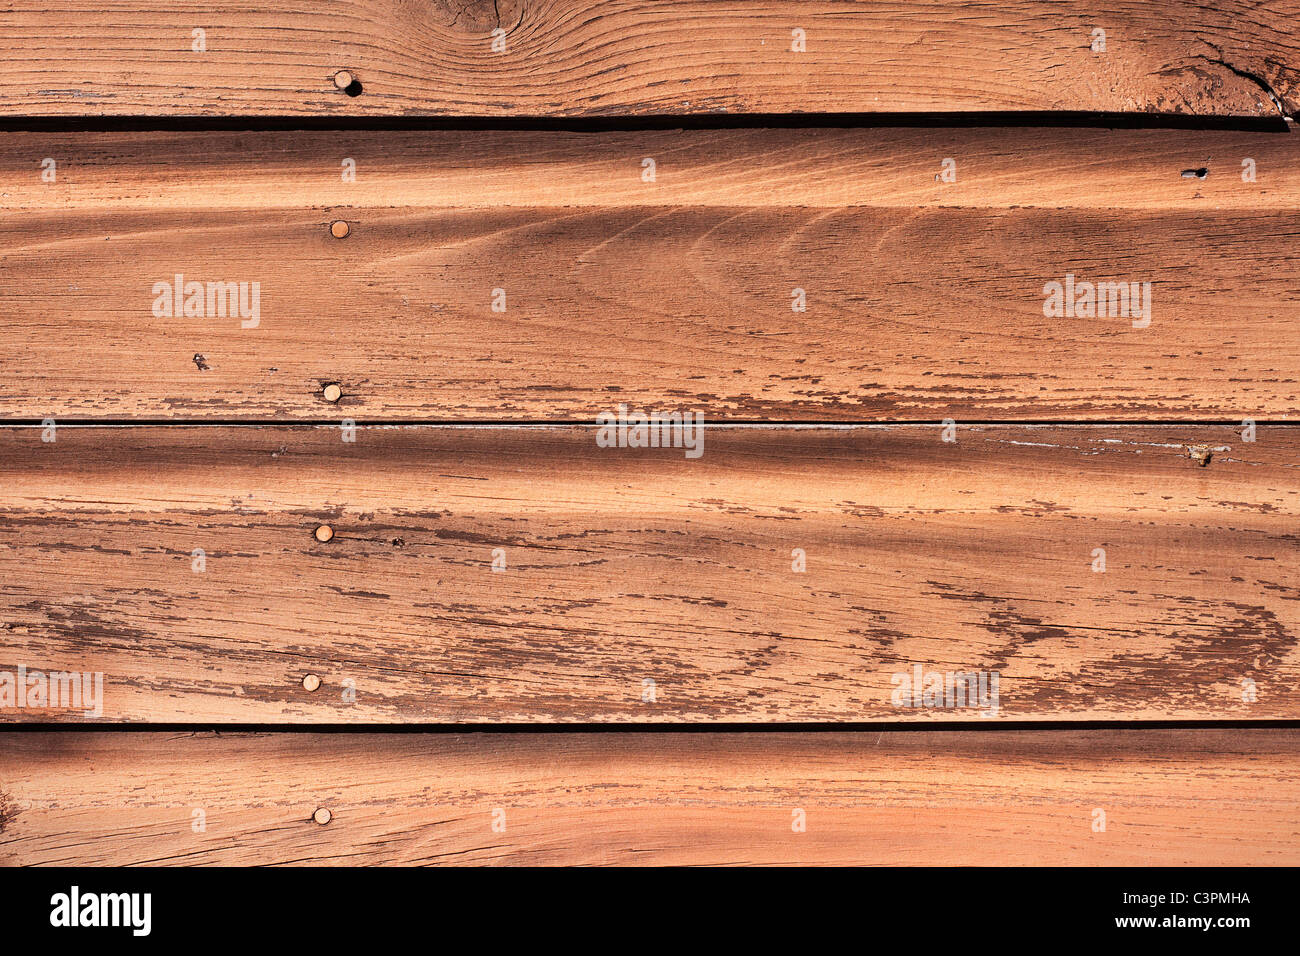 Some old and weathered wooden siding. - Stock Image